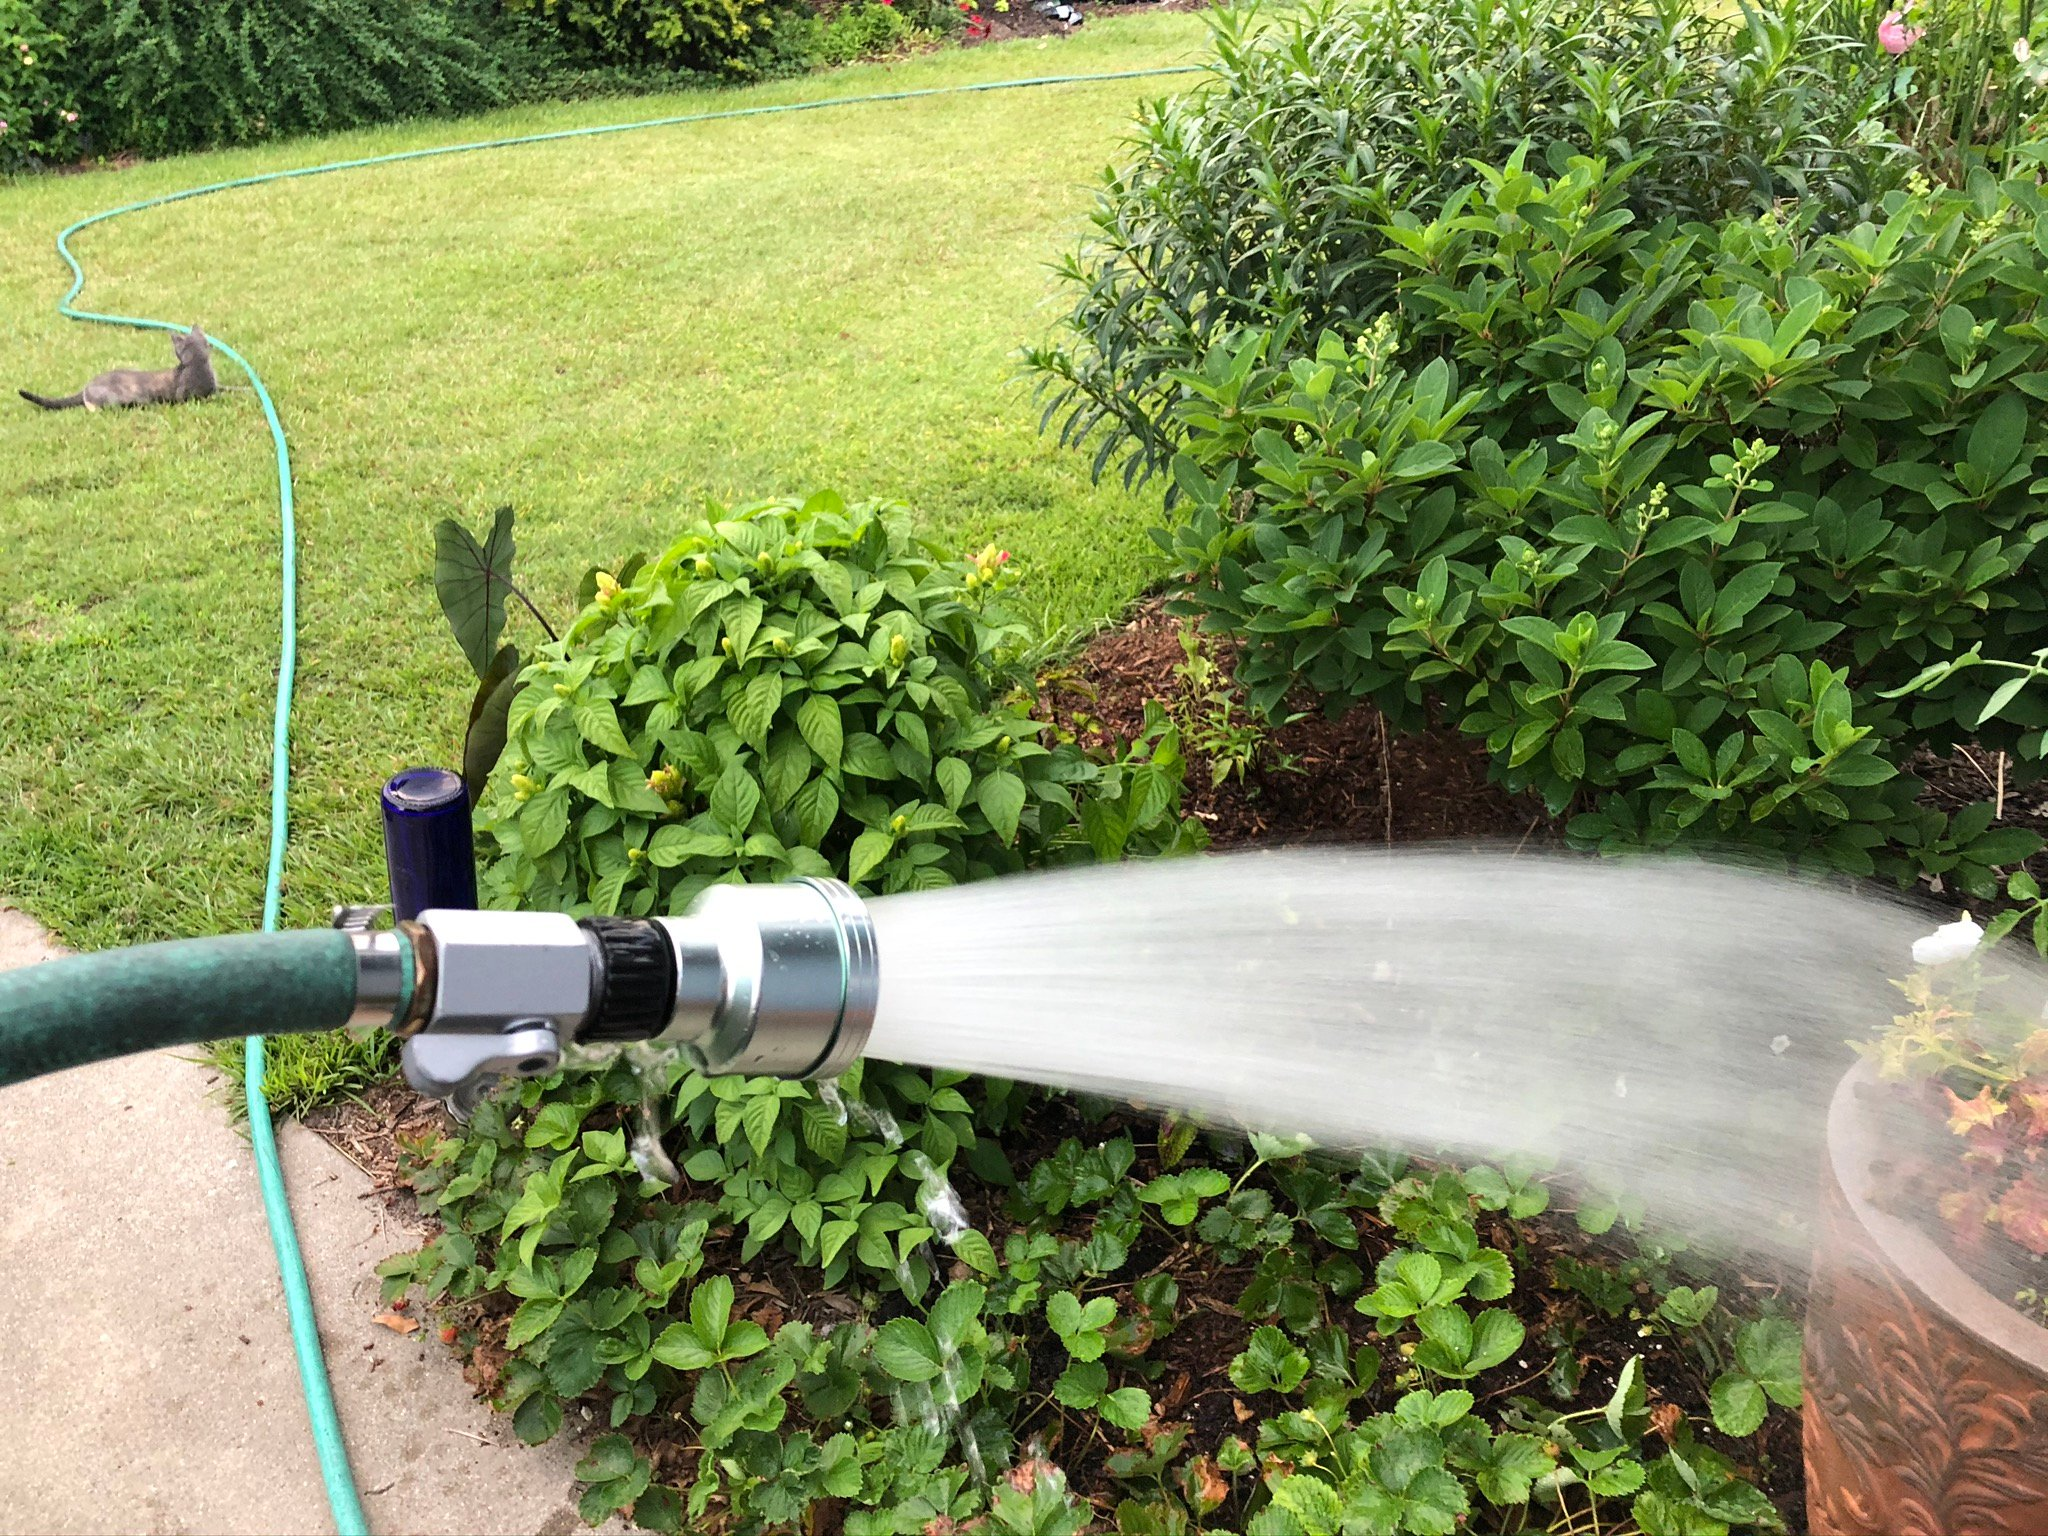 Hand watering container with rain wand